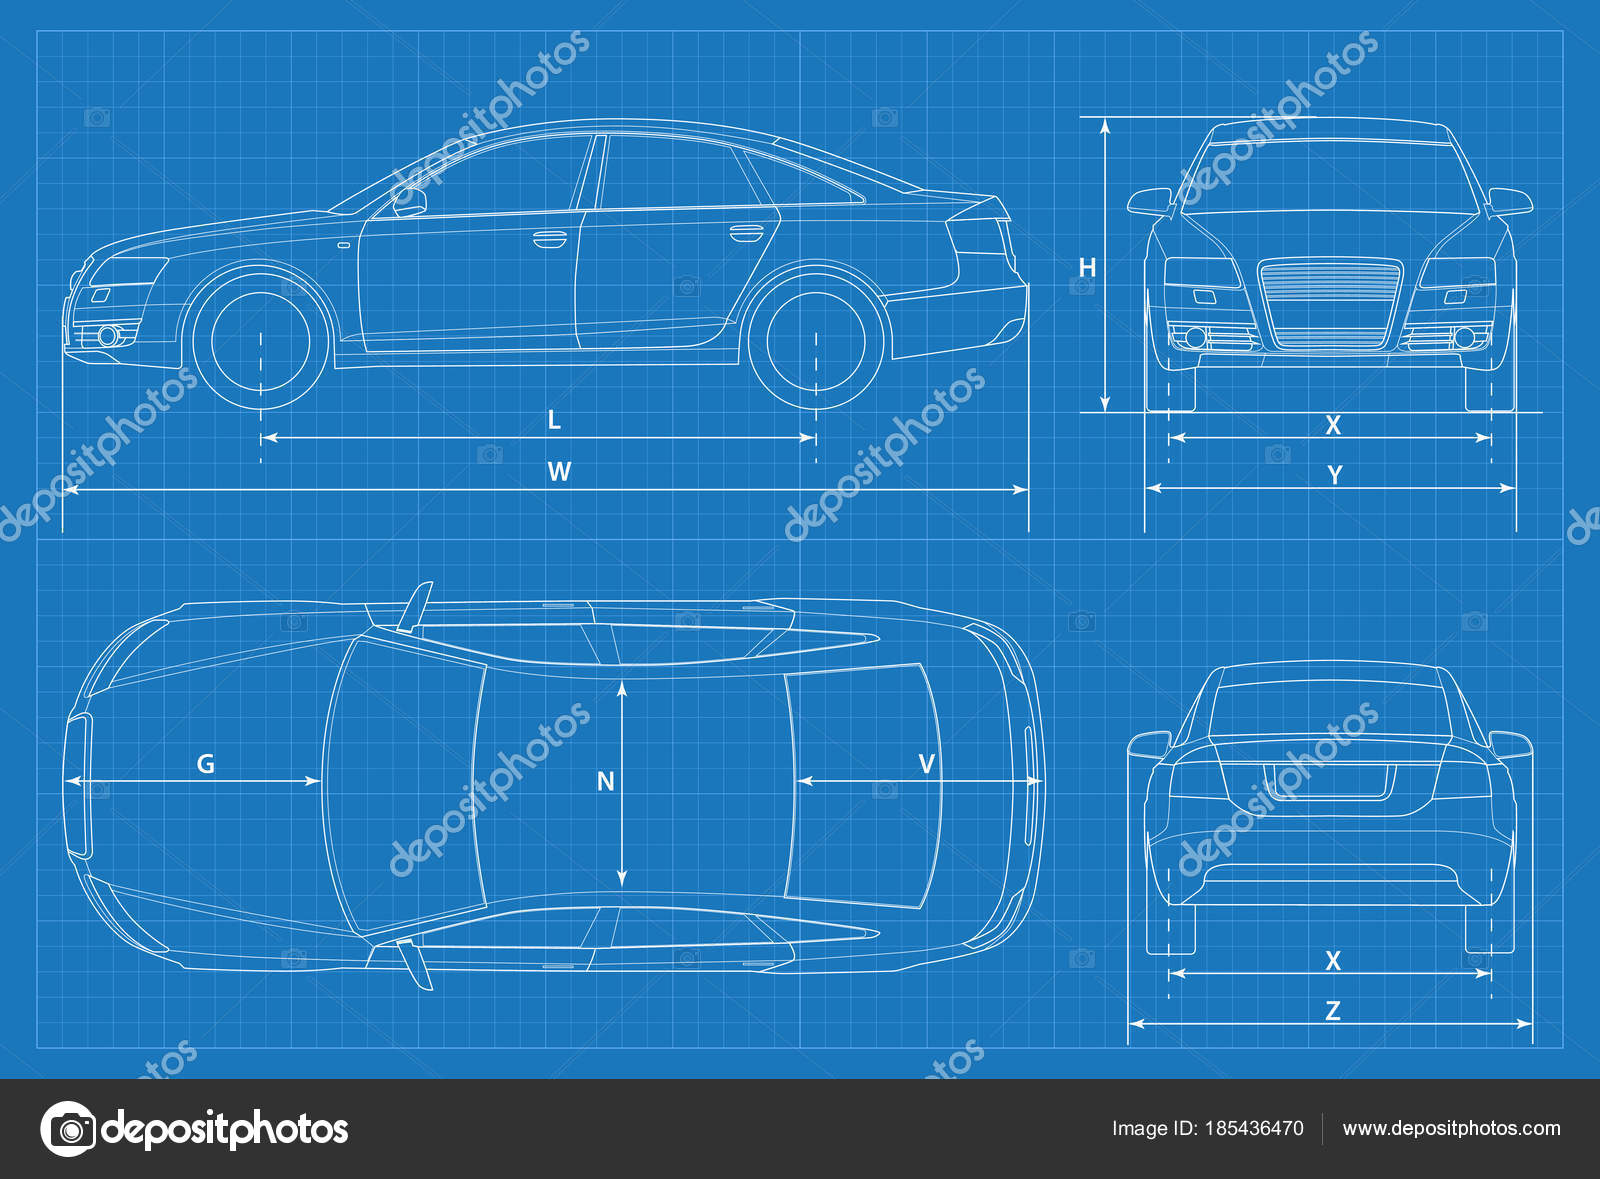 Car schematic or car blueprint vector illustration sedan car in car schematic or car blueprint vector illustration sedan car in outline business sedan malvernweather Choice Image